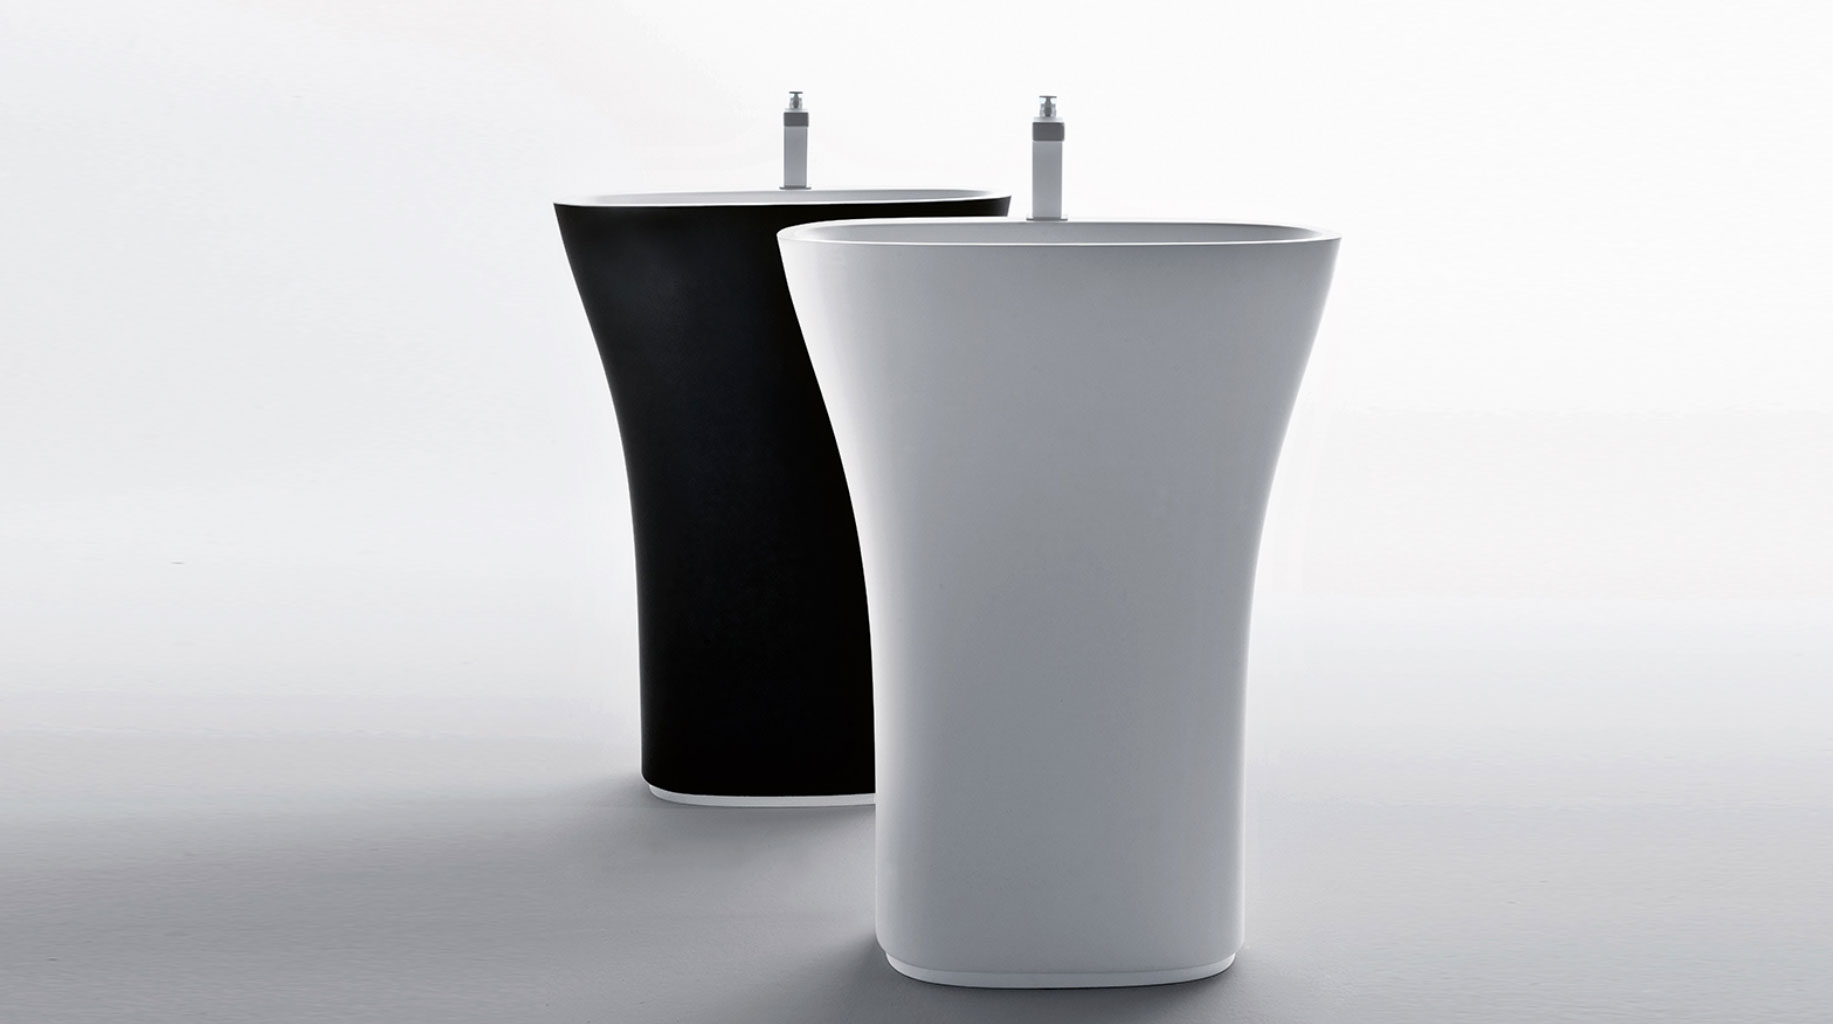 two curved standing wash basins in black and white